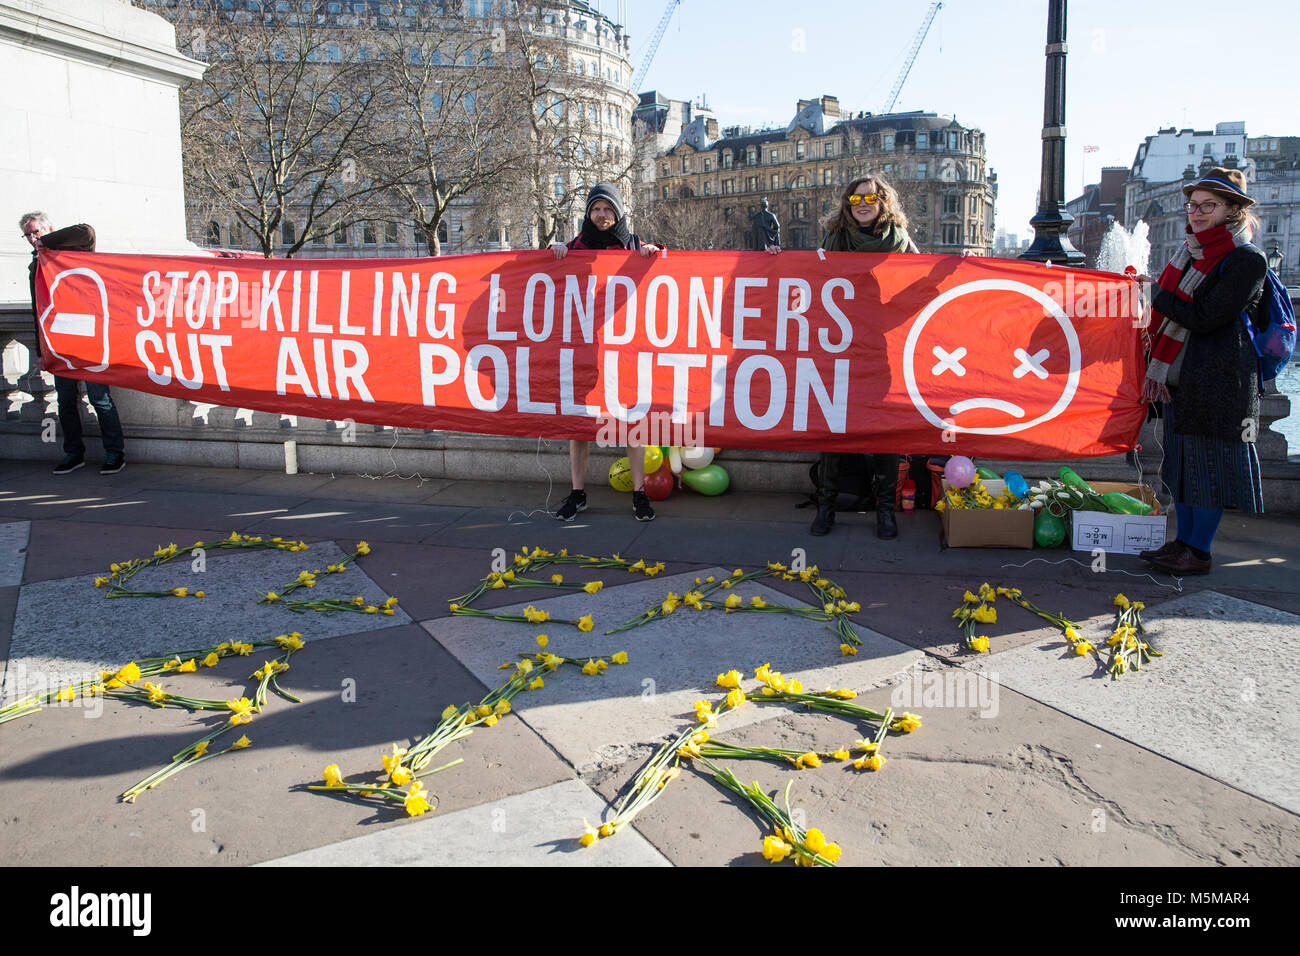 London, UK. 24th February, 2018. Environmental campaigners from the London Clean Air Coalition, a new network of - Stock Image